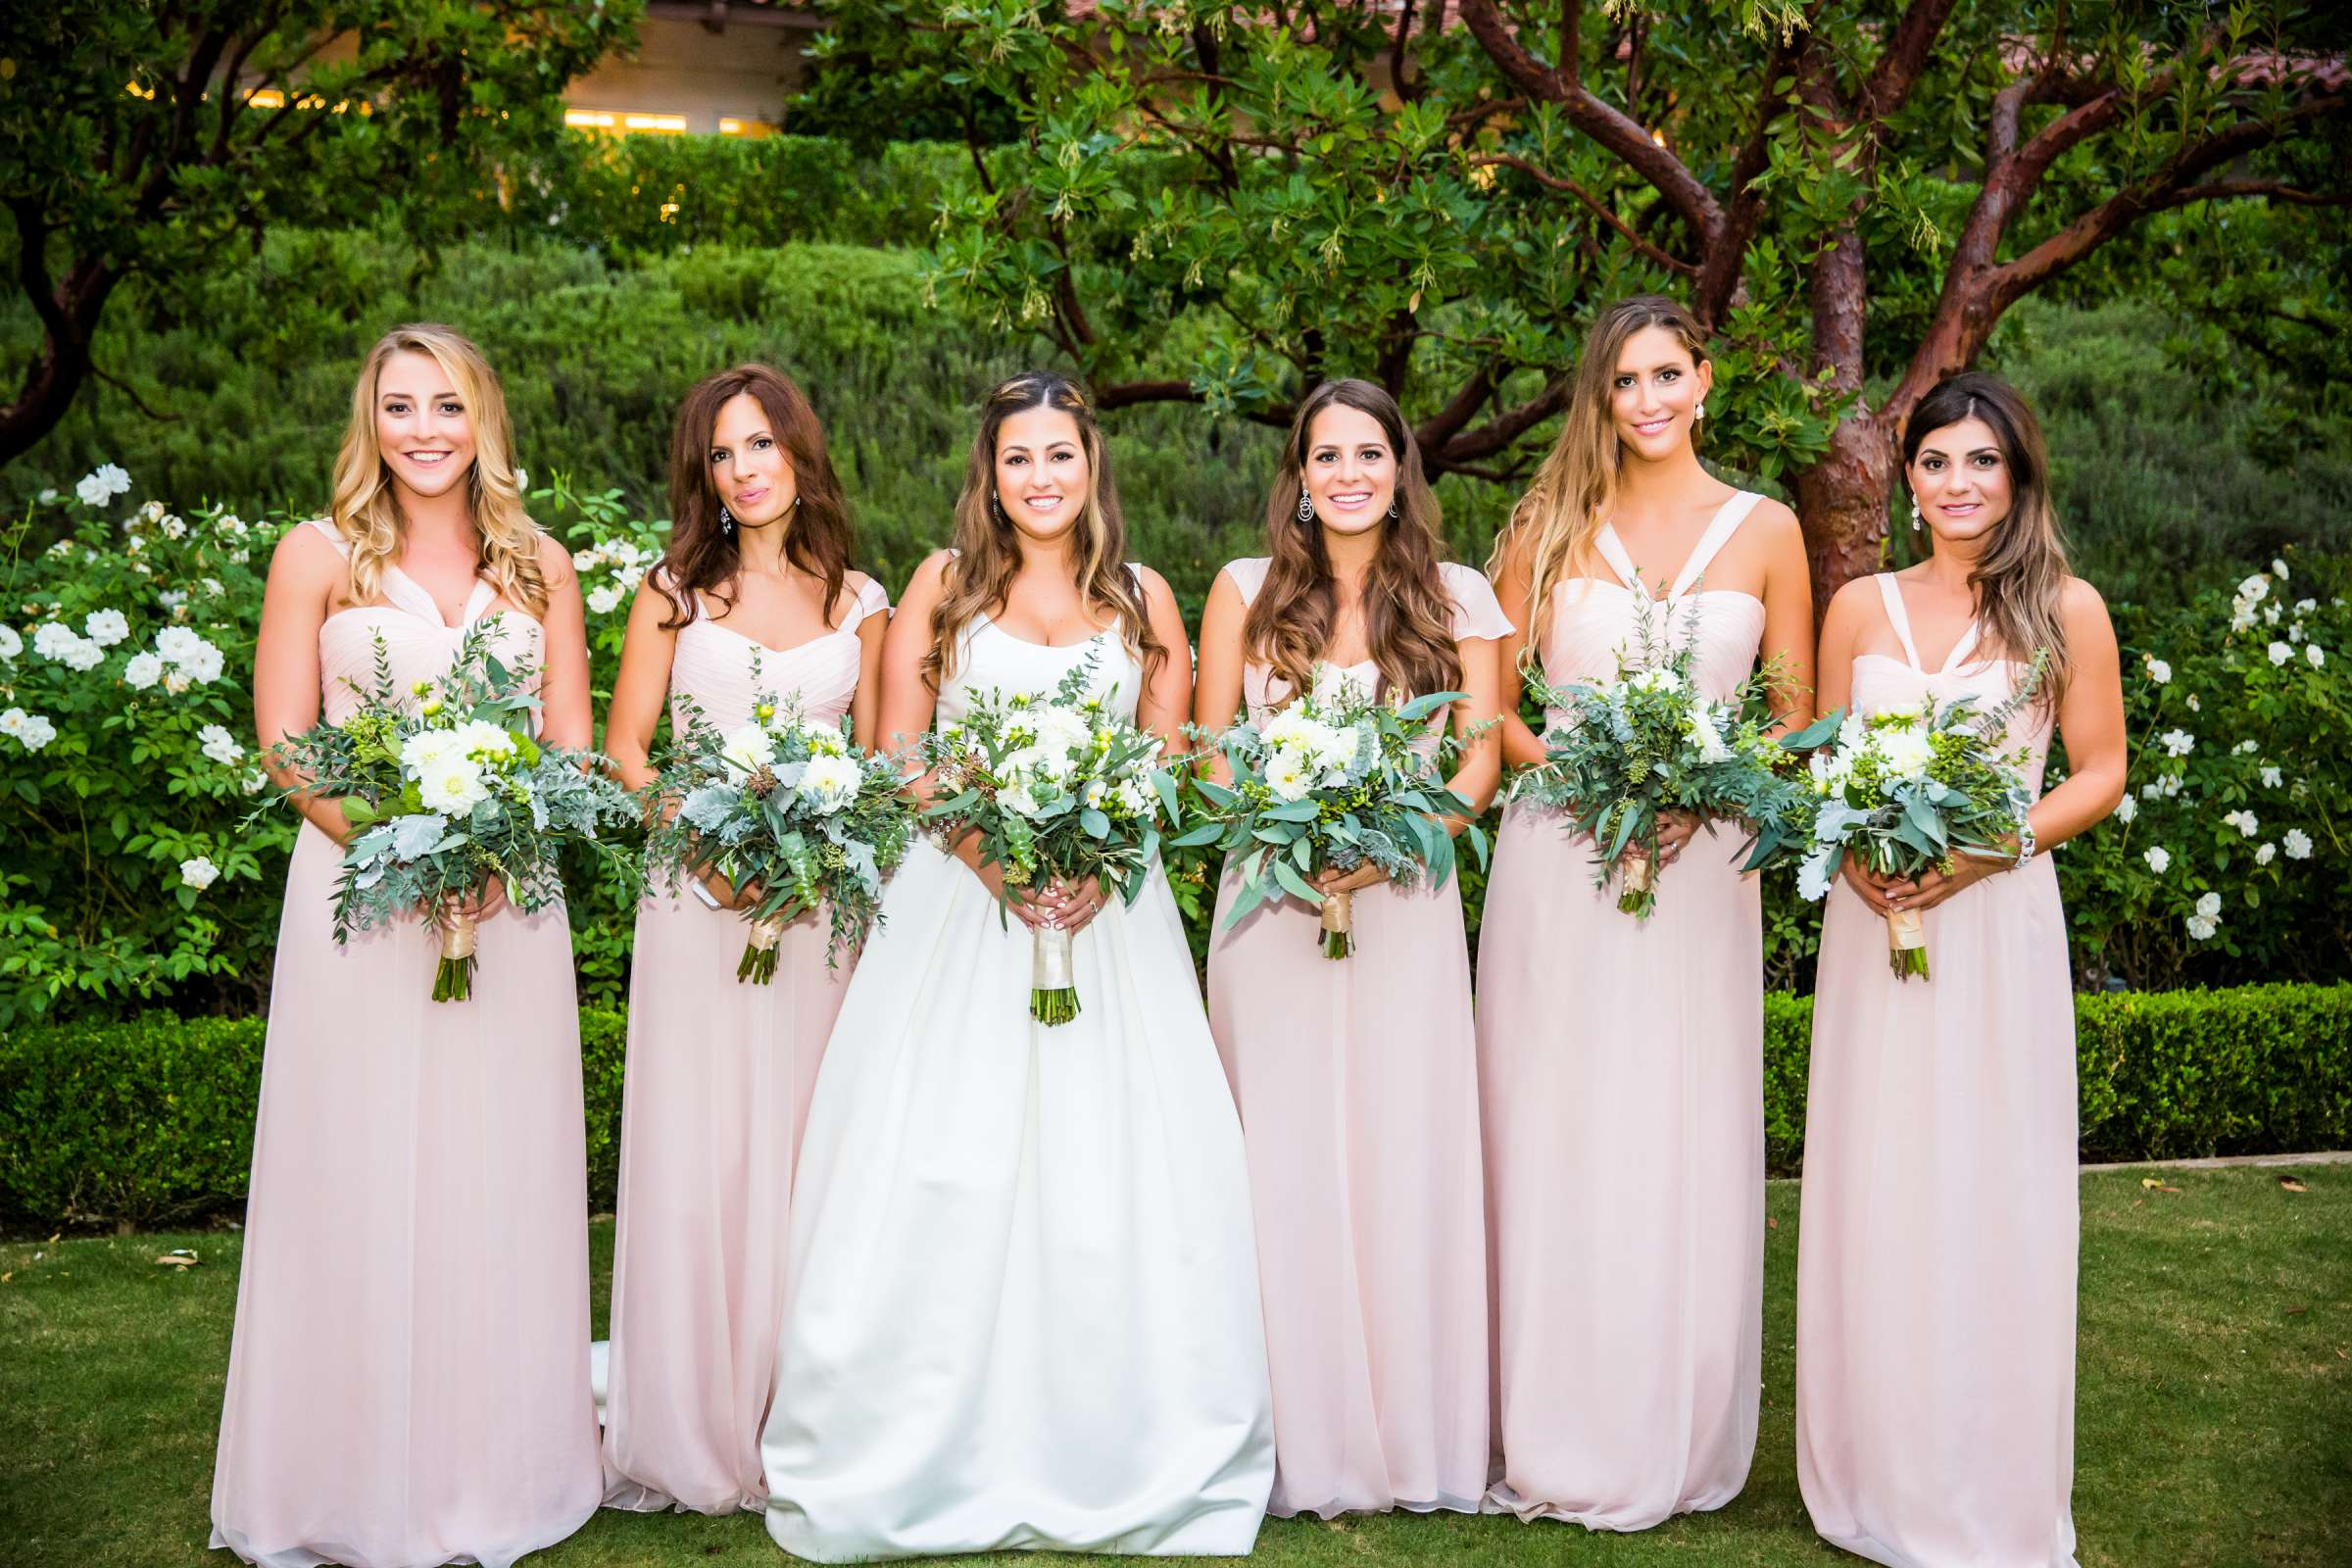 Rancho Bernardo Inn Wedding coordinated by Très Chic Events, Stefania and Nicholas Wedding Photo #26 by True Photography